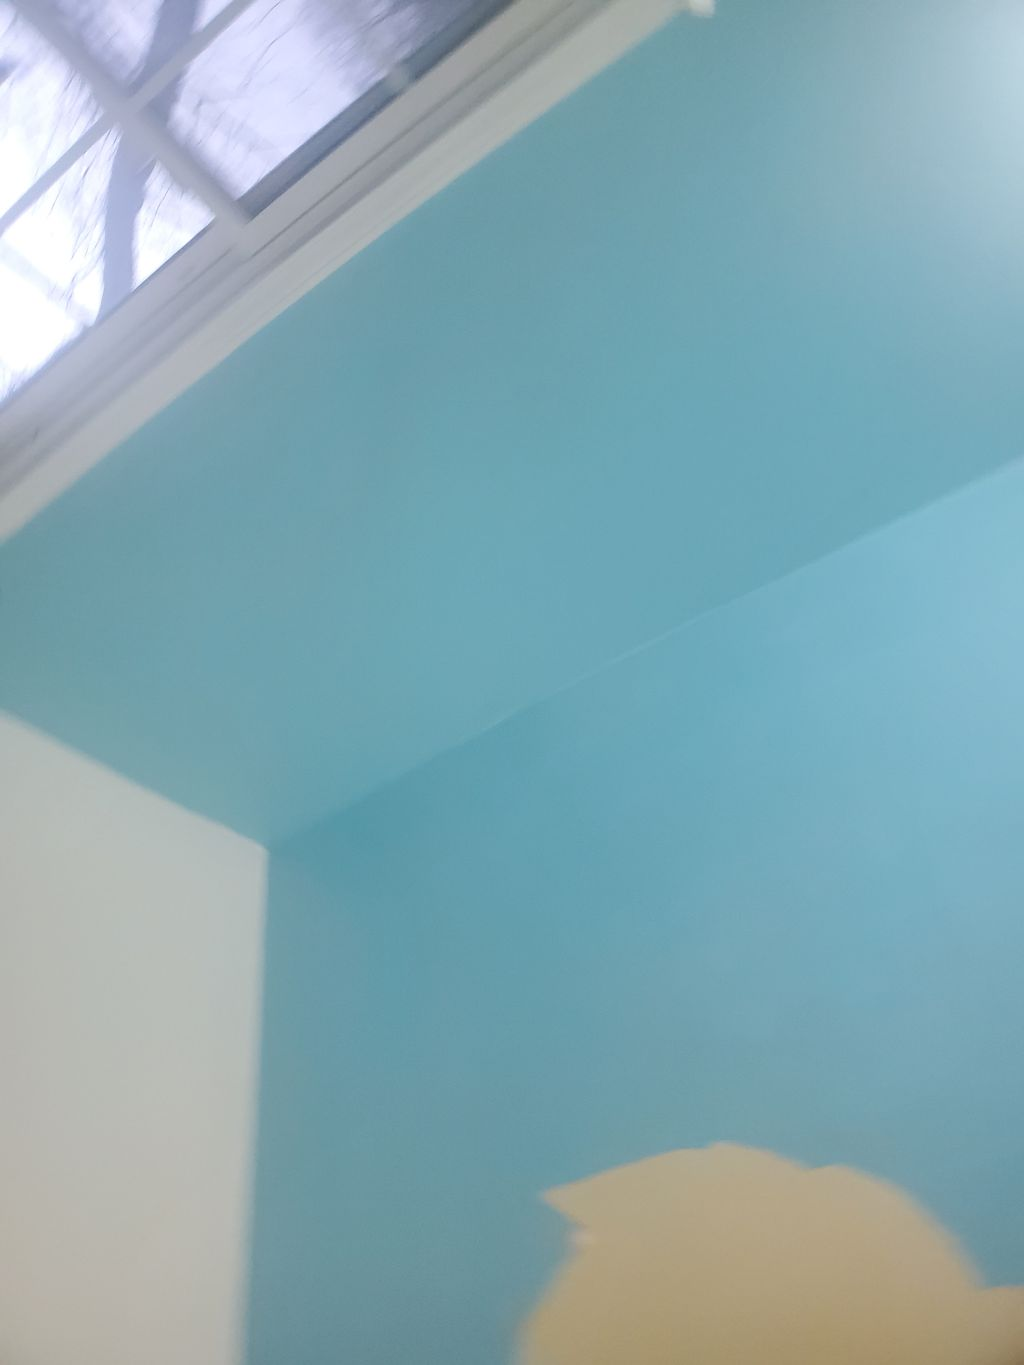 Interior wallpaper removal and painting